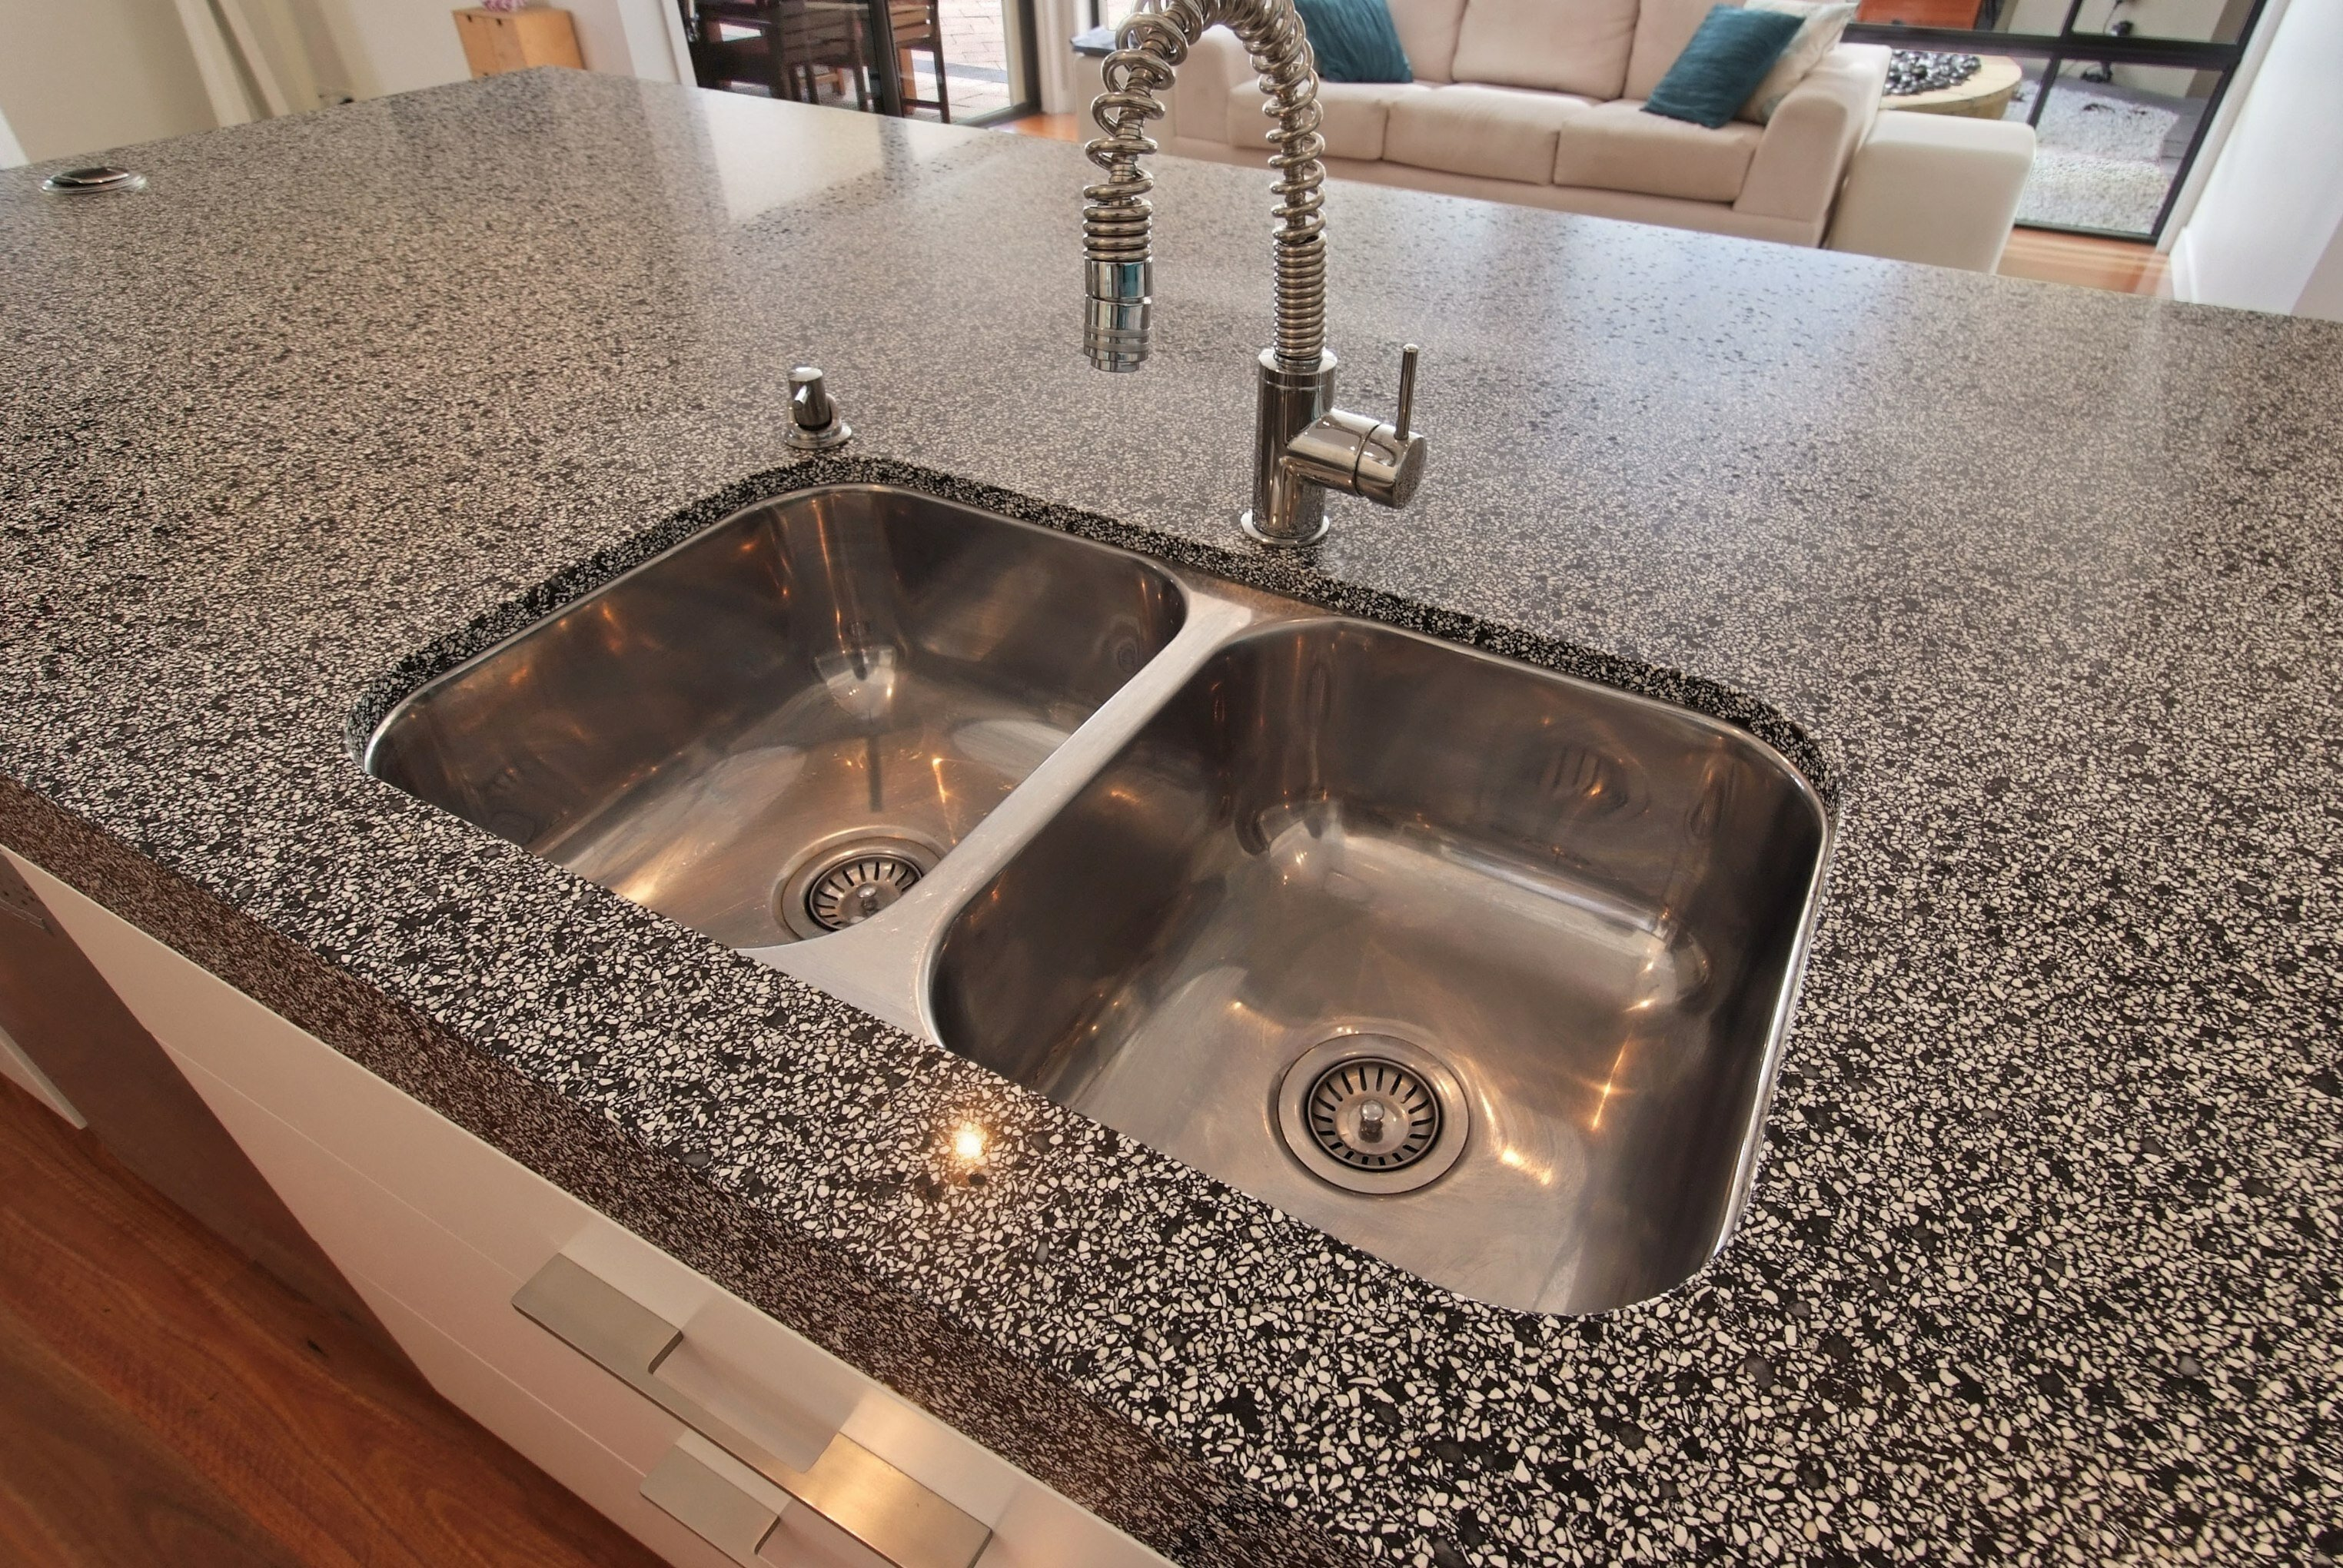 Undermount Stainless Sink | Undermount Sink | Undercounter Sink